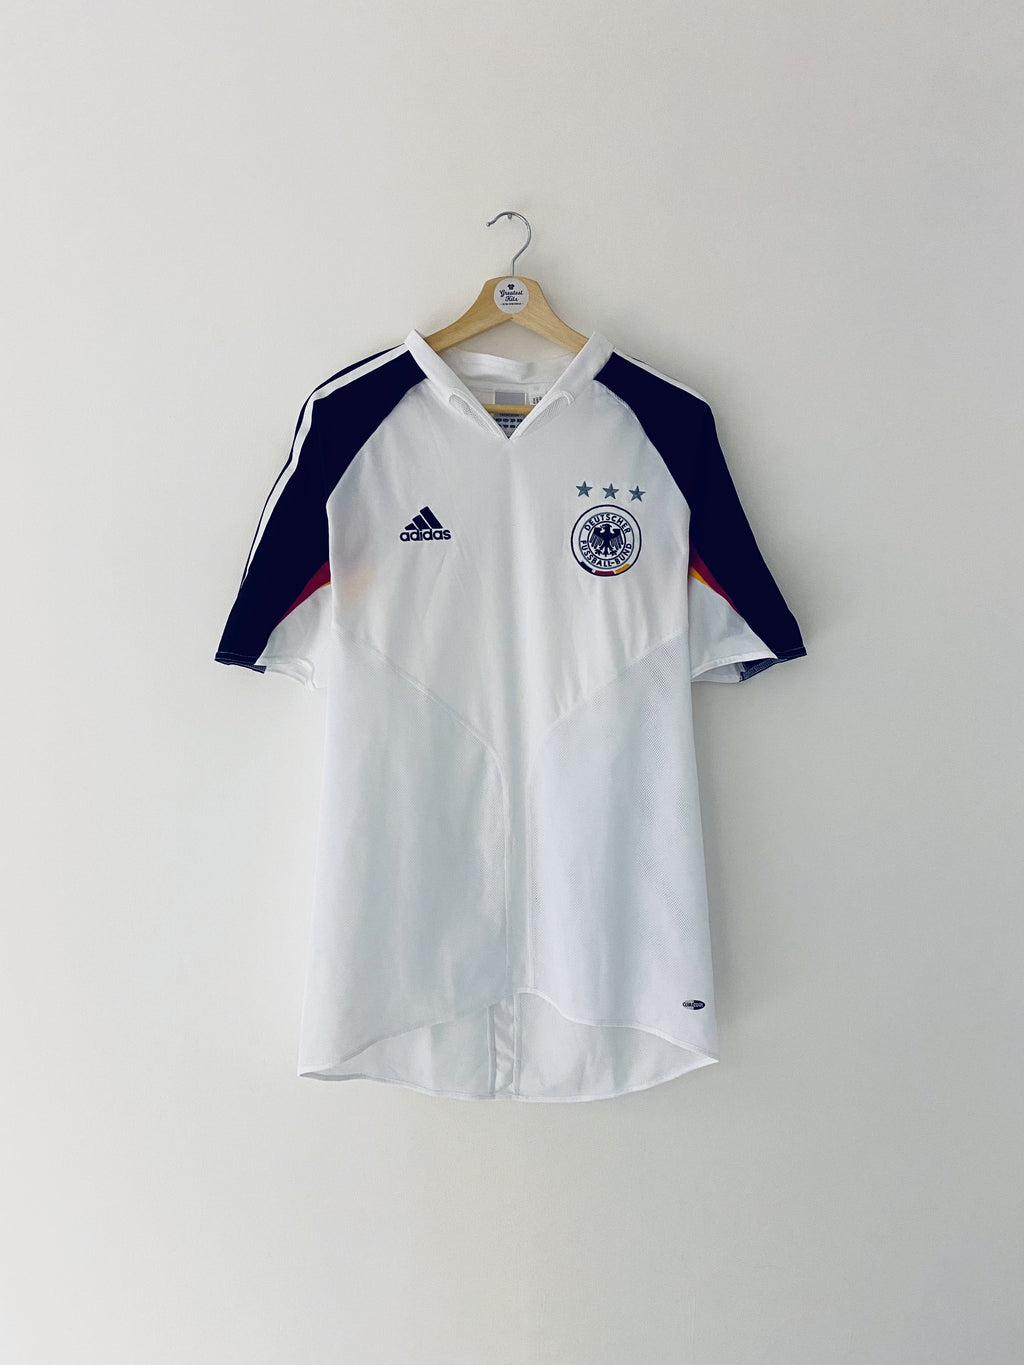 2004/05 Germany Home Shirt (M) 9/10